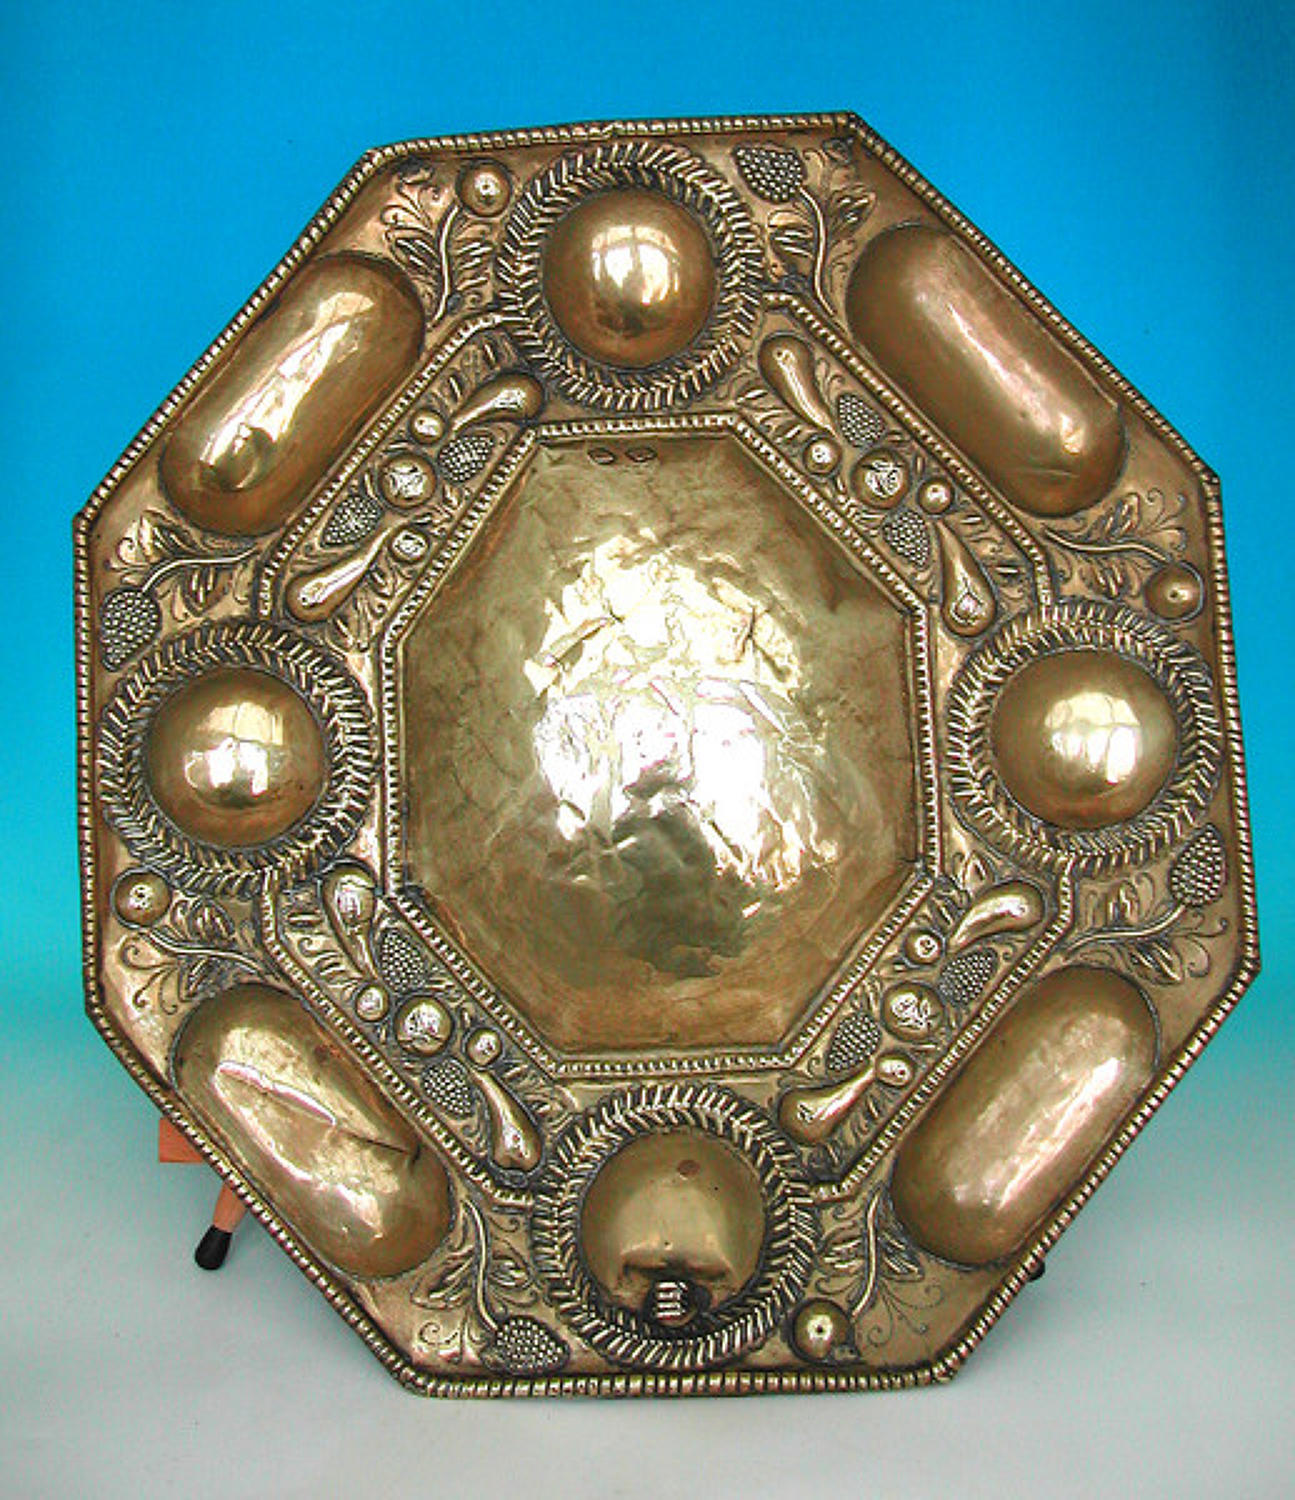 17thc Brass Candle Reflector .  Dutch. C1660-80